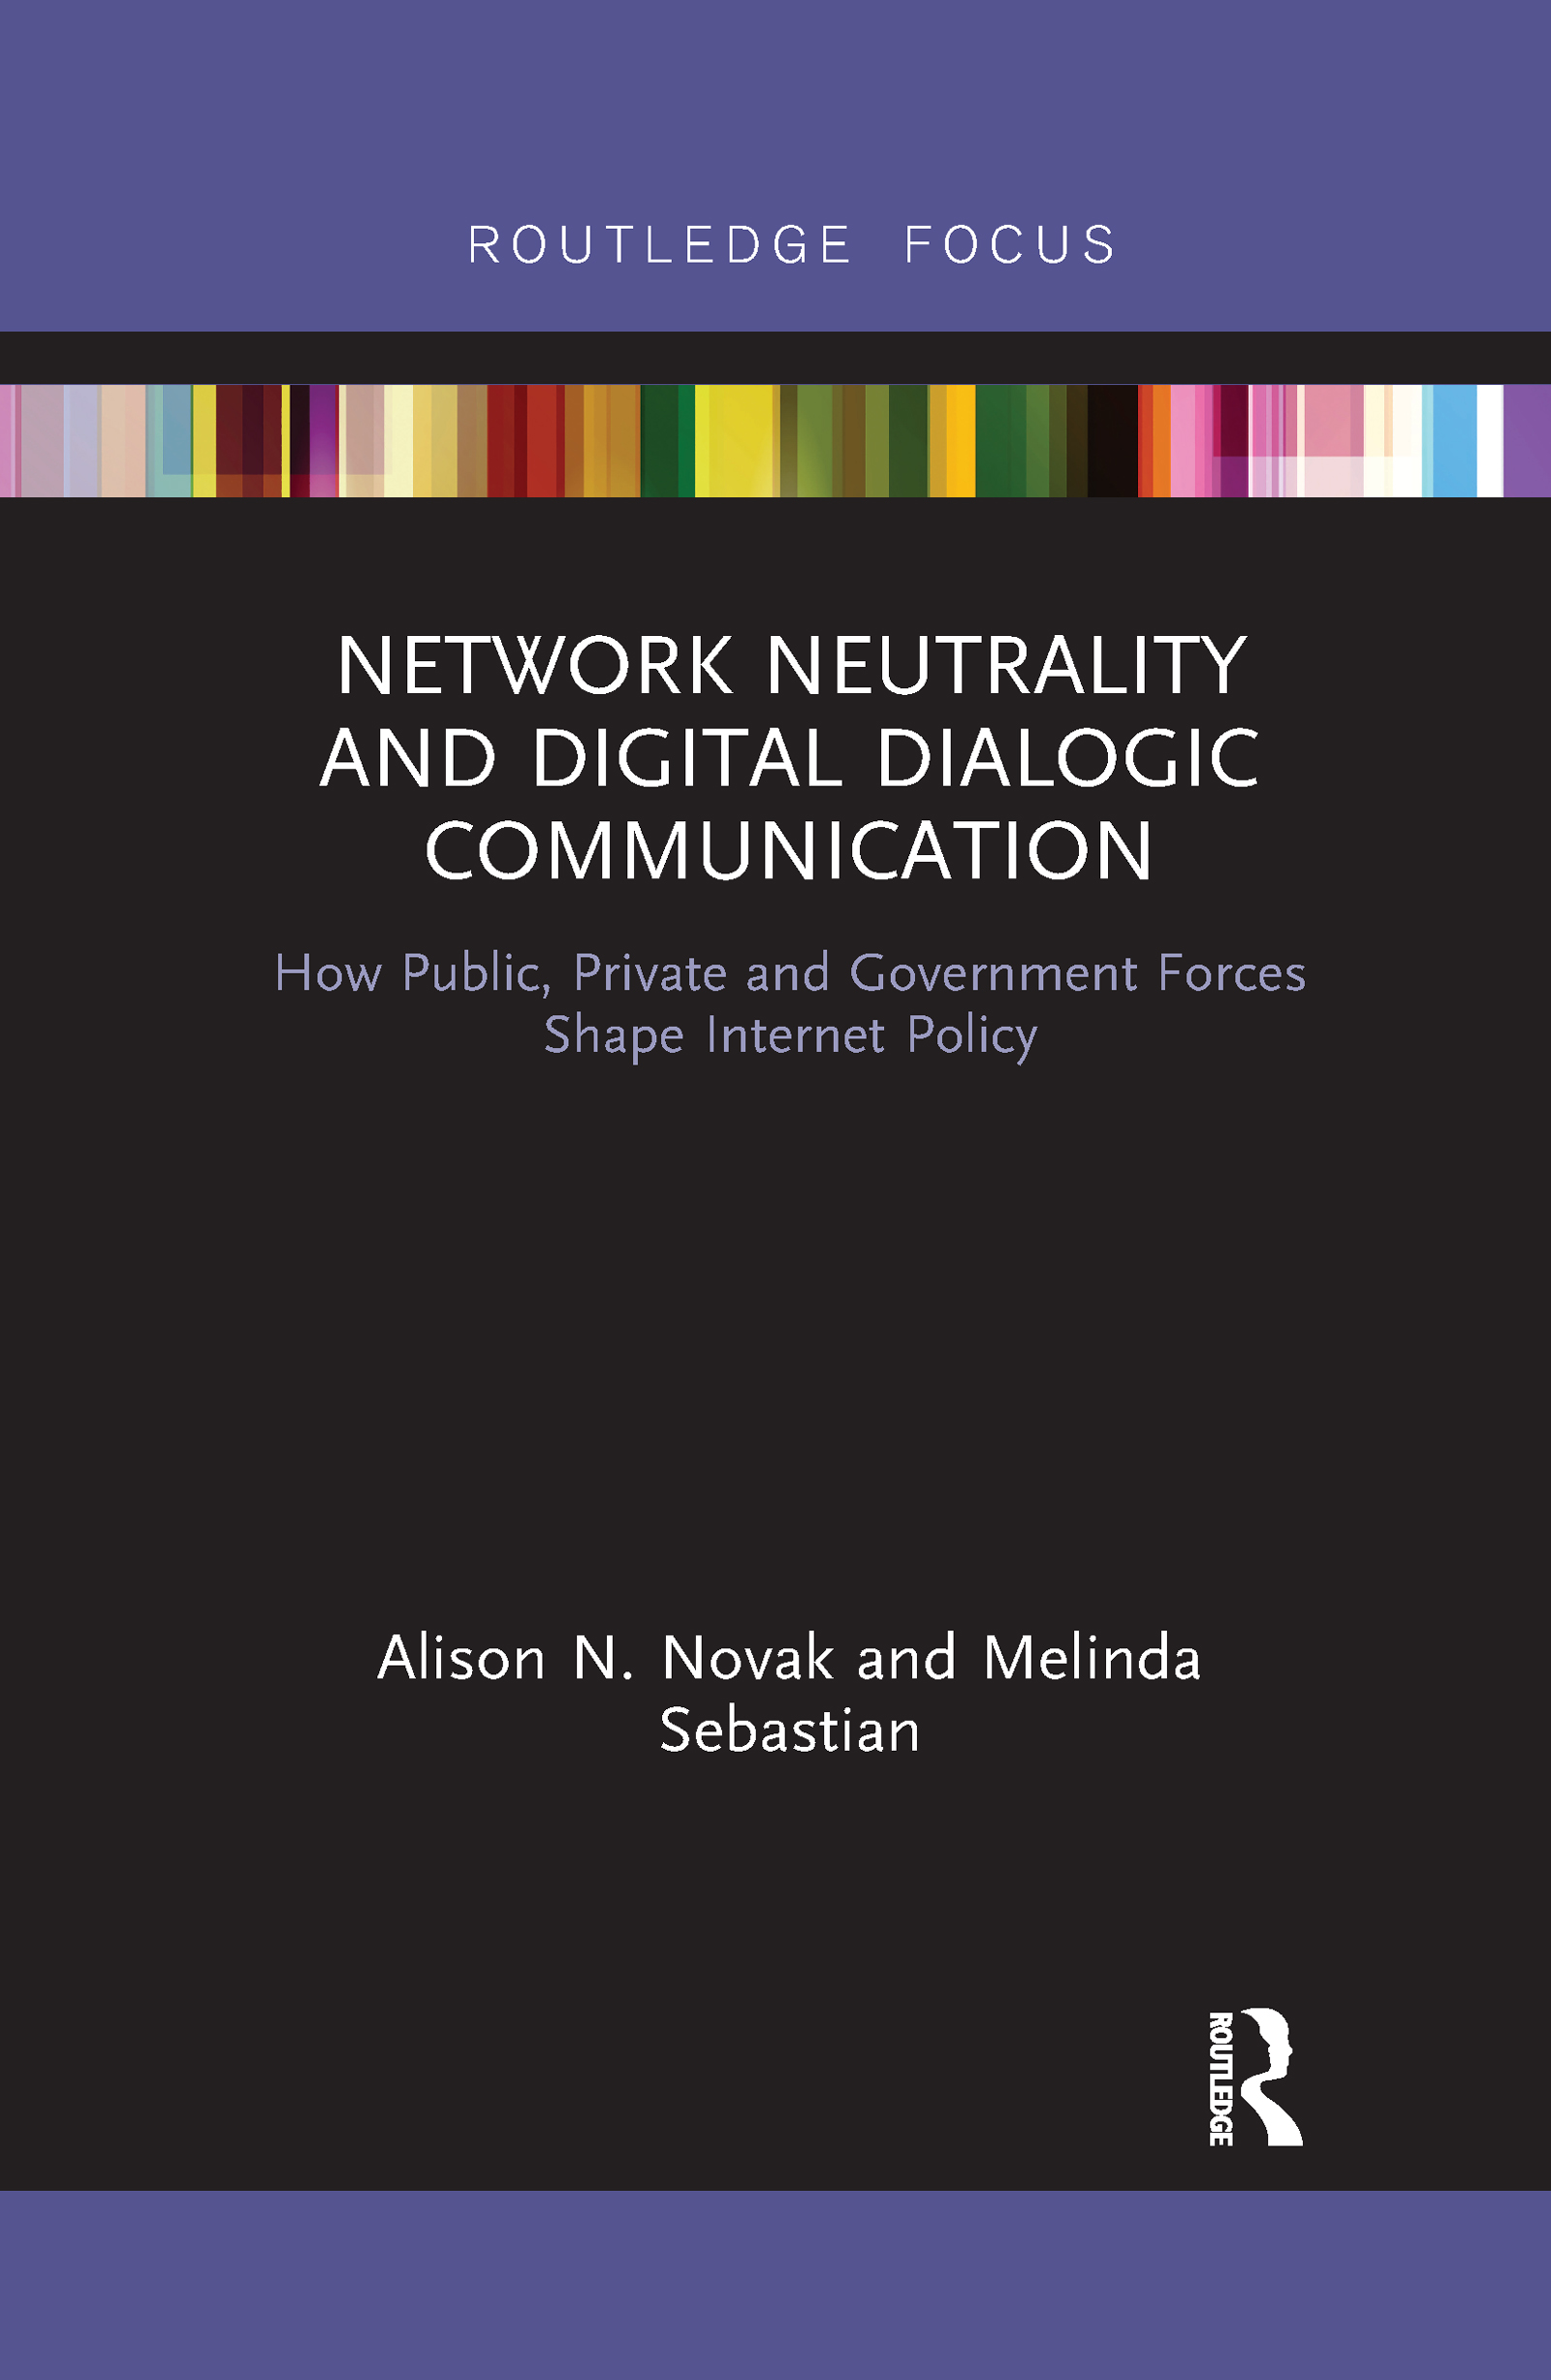 Network Neutrality and Digital Dialogic Communication